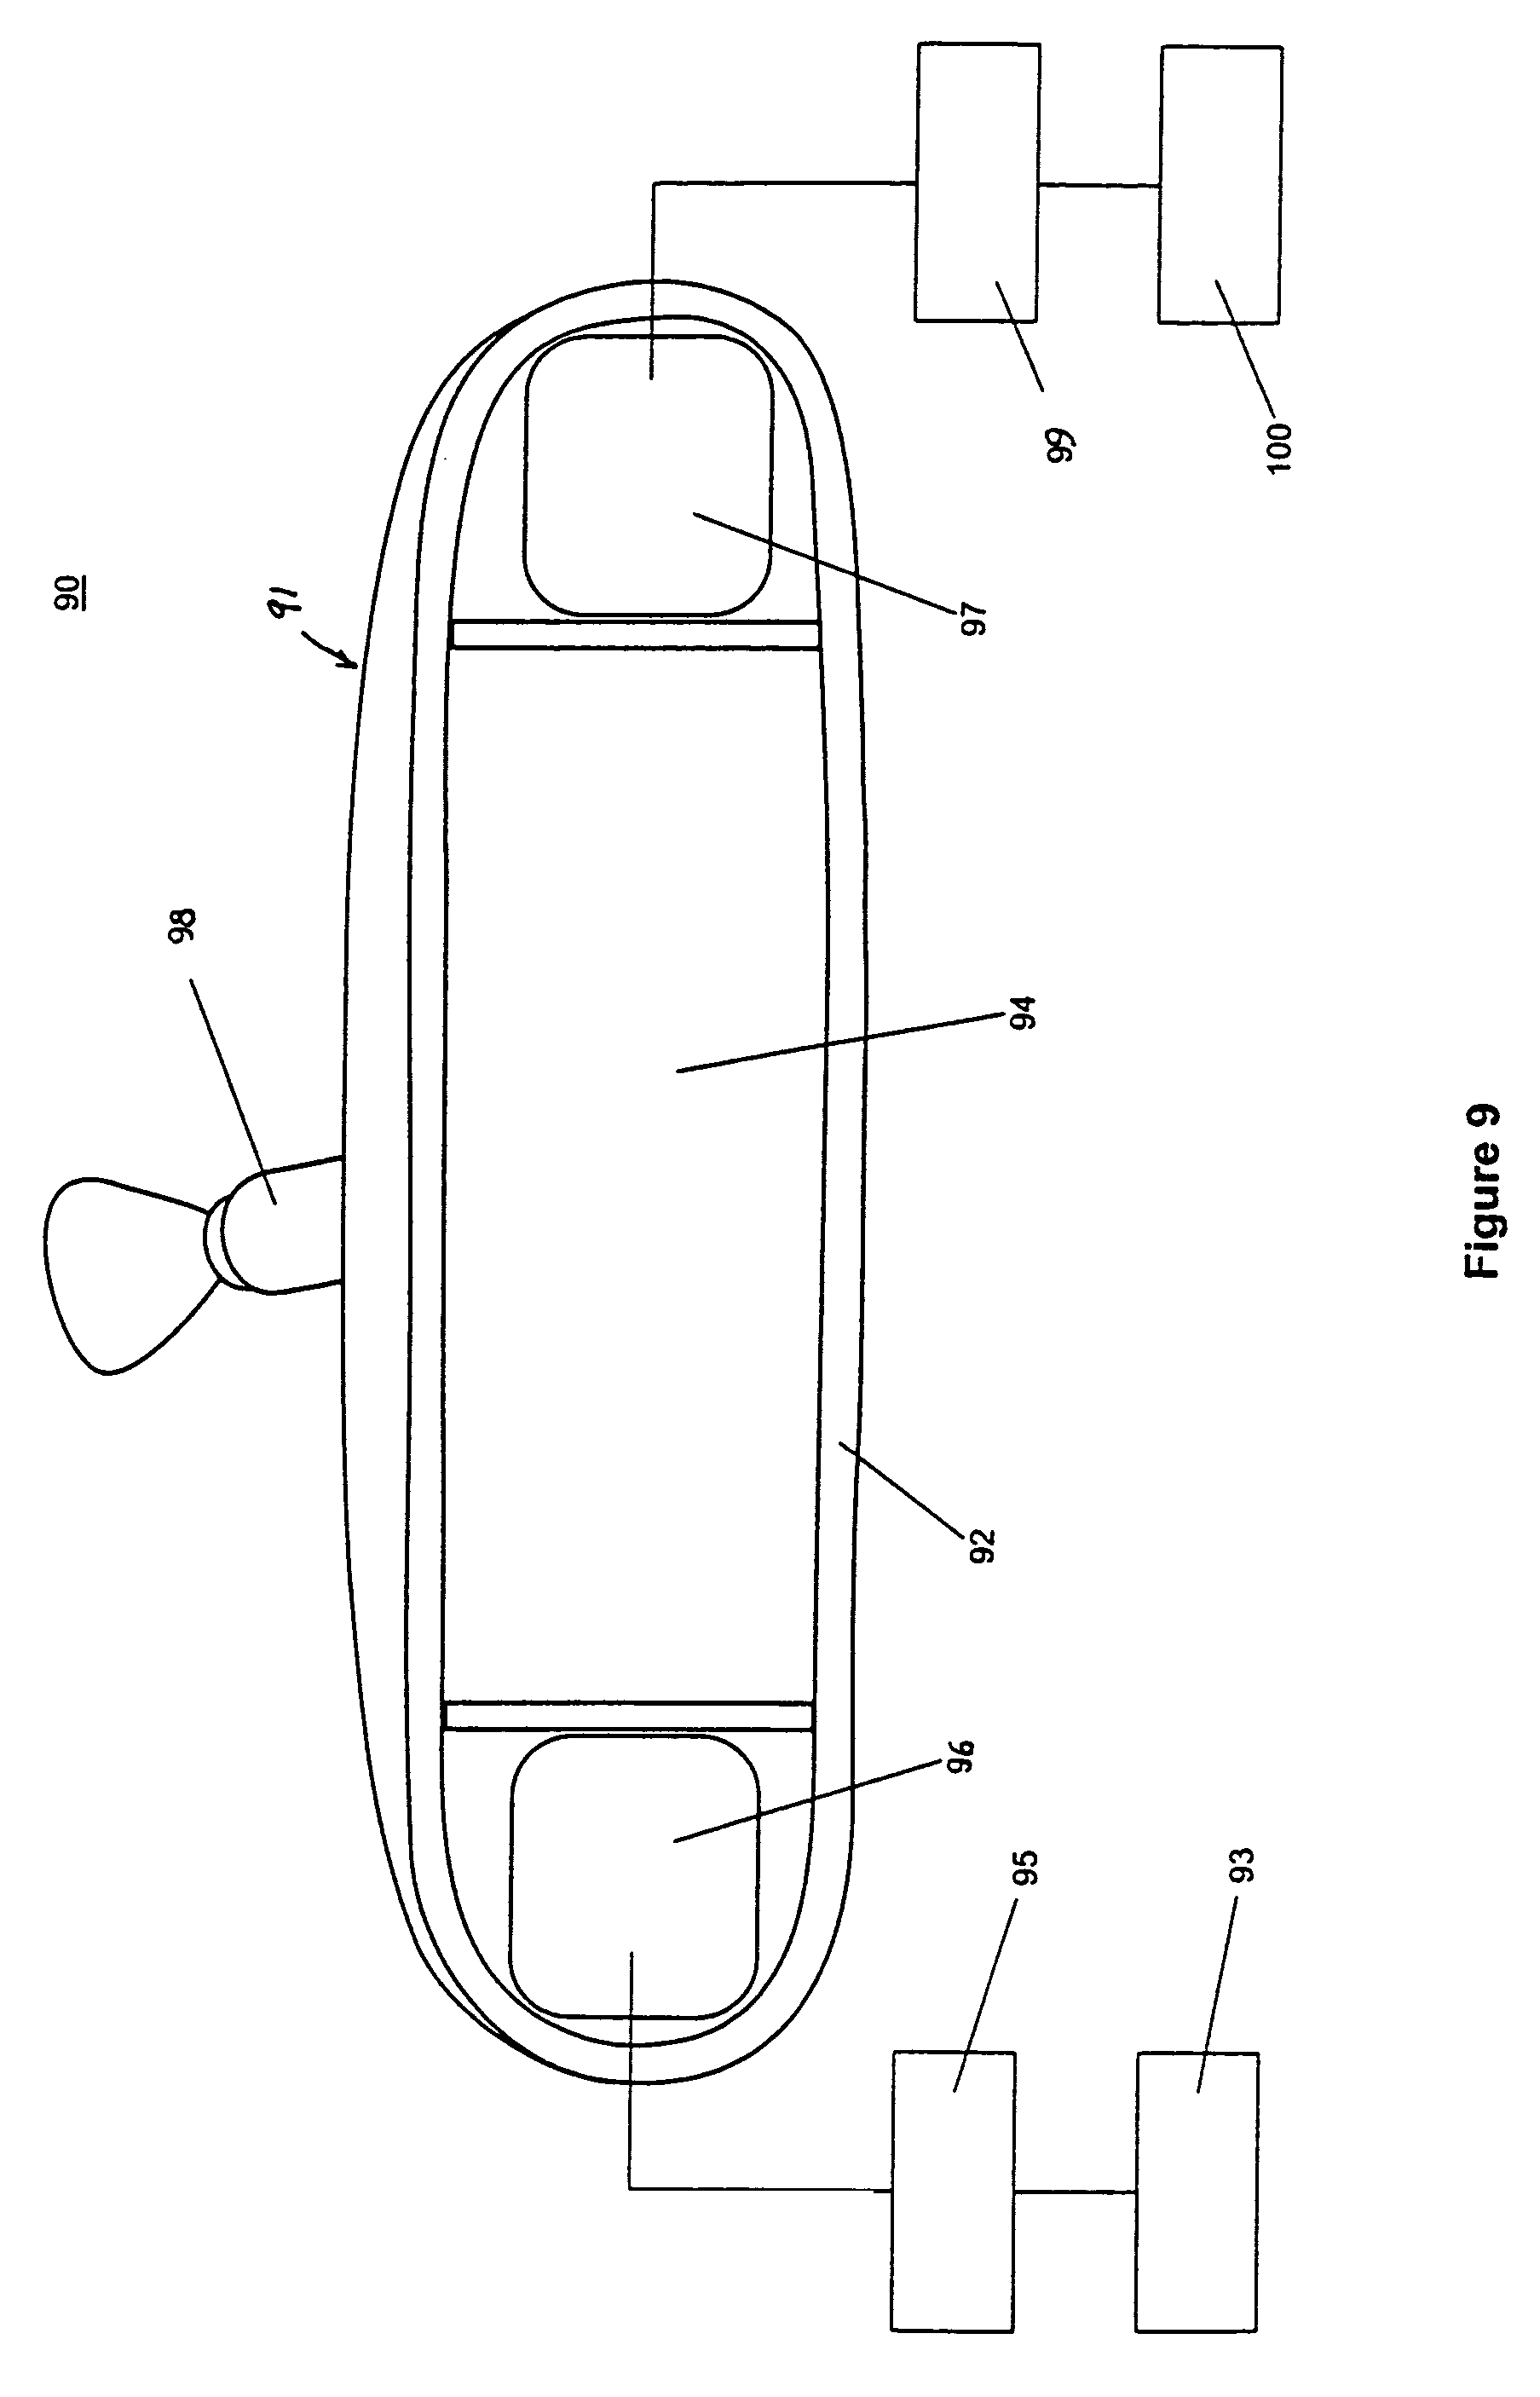 Patent Us 7446650 B2 Diagram Besides Rear Main Seal Leak Furthermore 1995 Nissan Pick Up Images